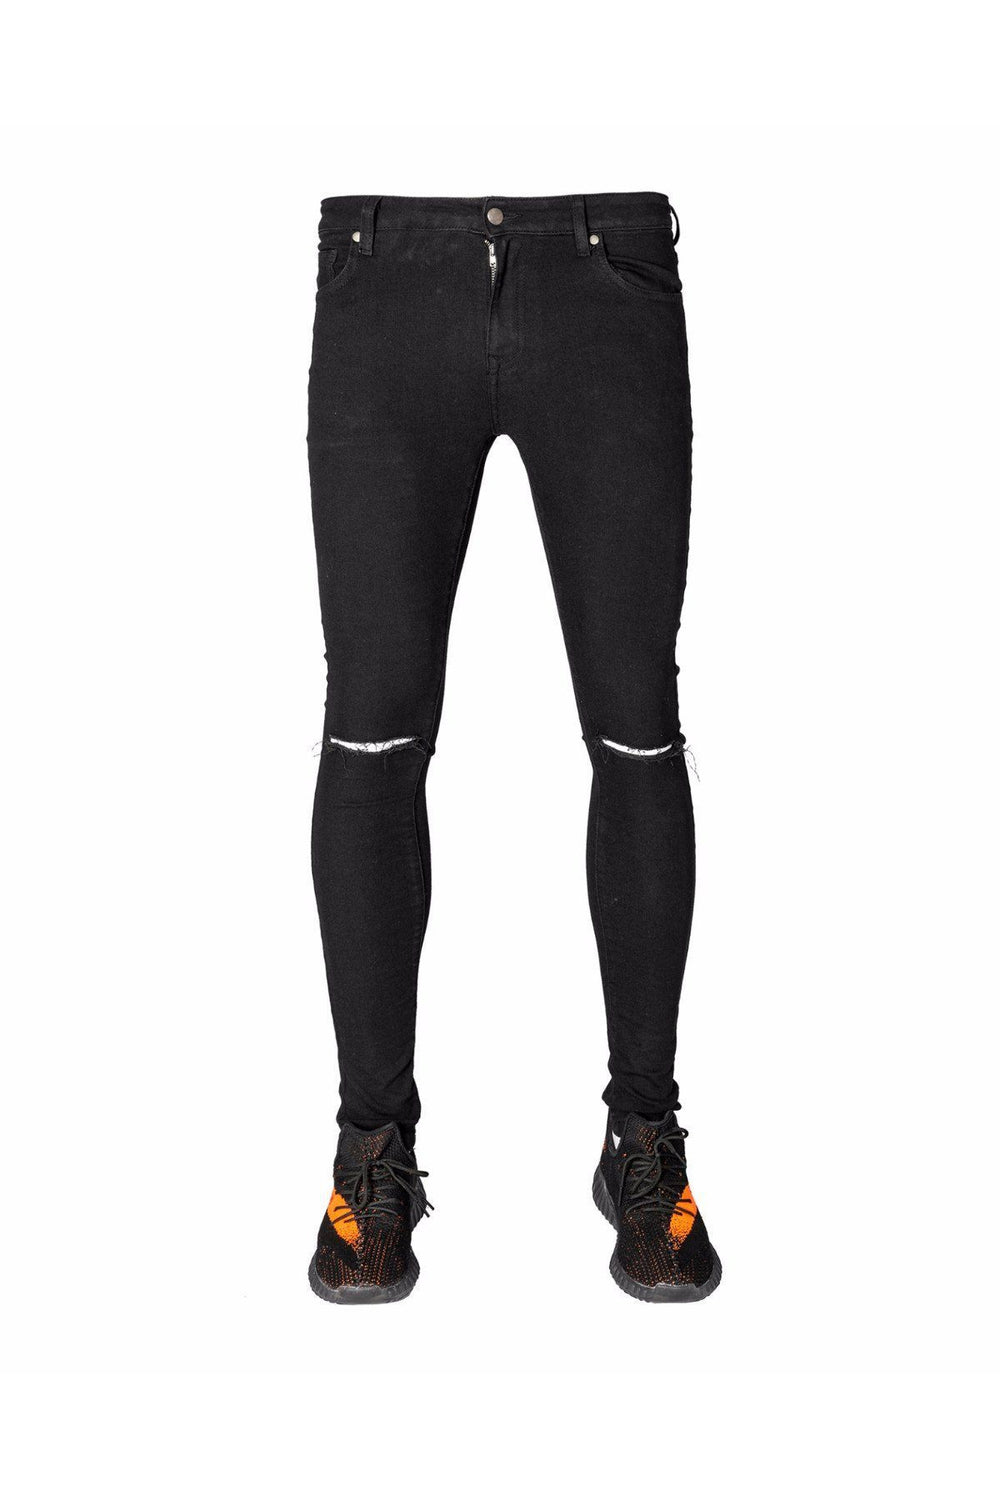 Jeans - YOLC. Skinny Ripped Knee Jeans Black